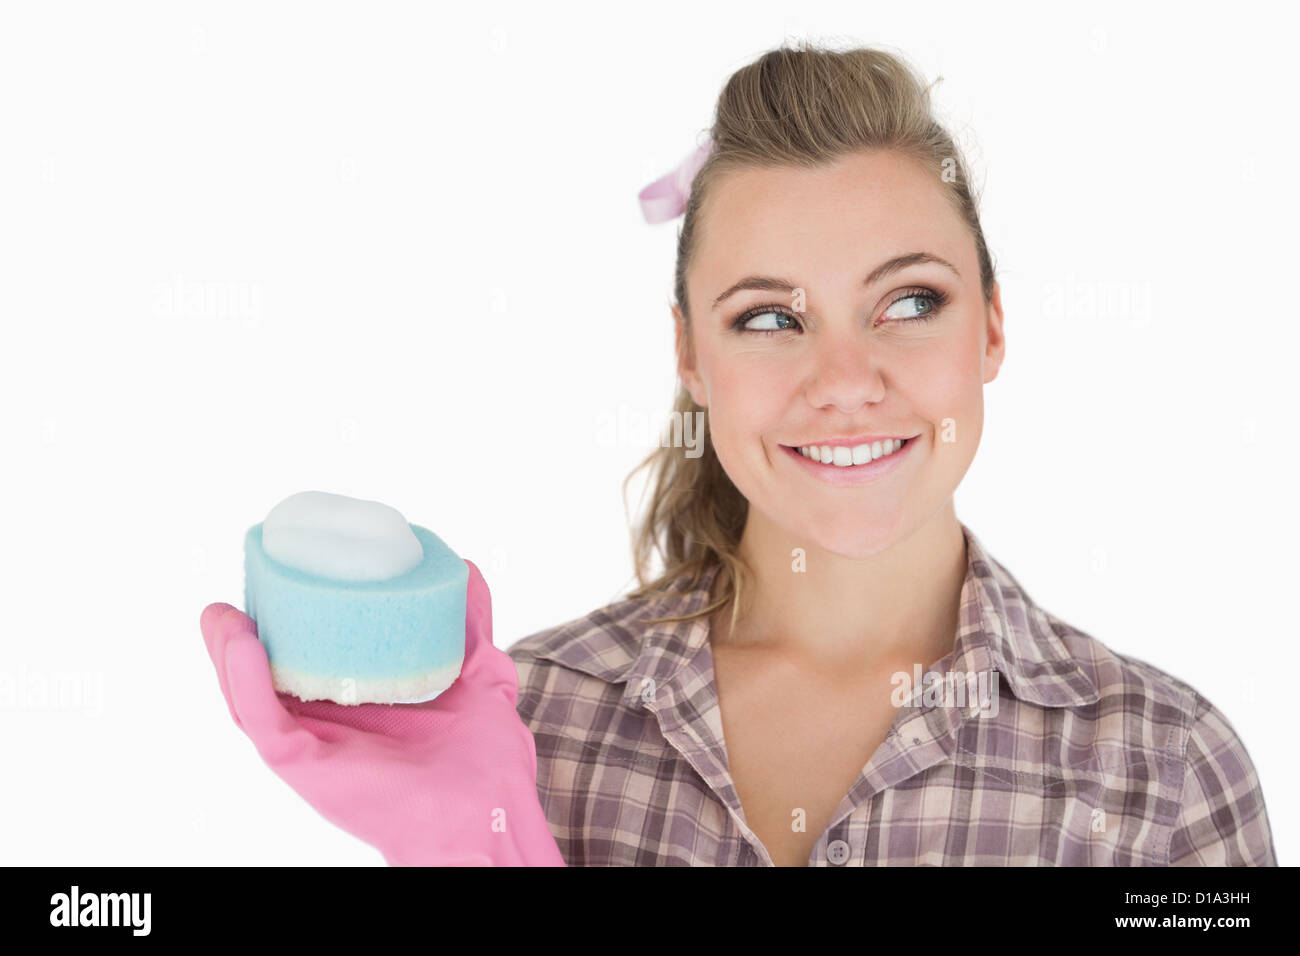 Smiling woman holding soap suds over sponge - Stock Image